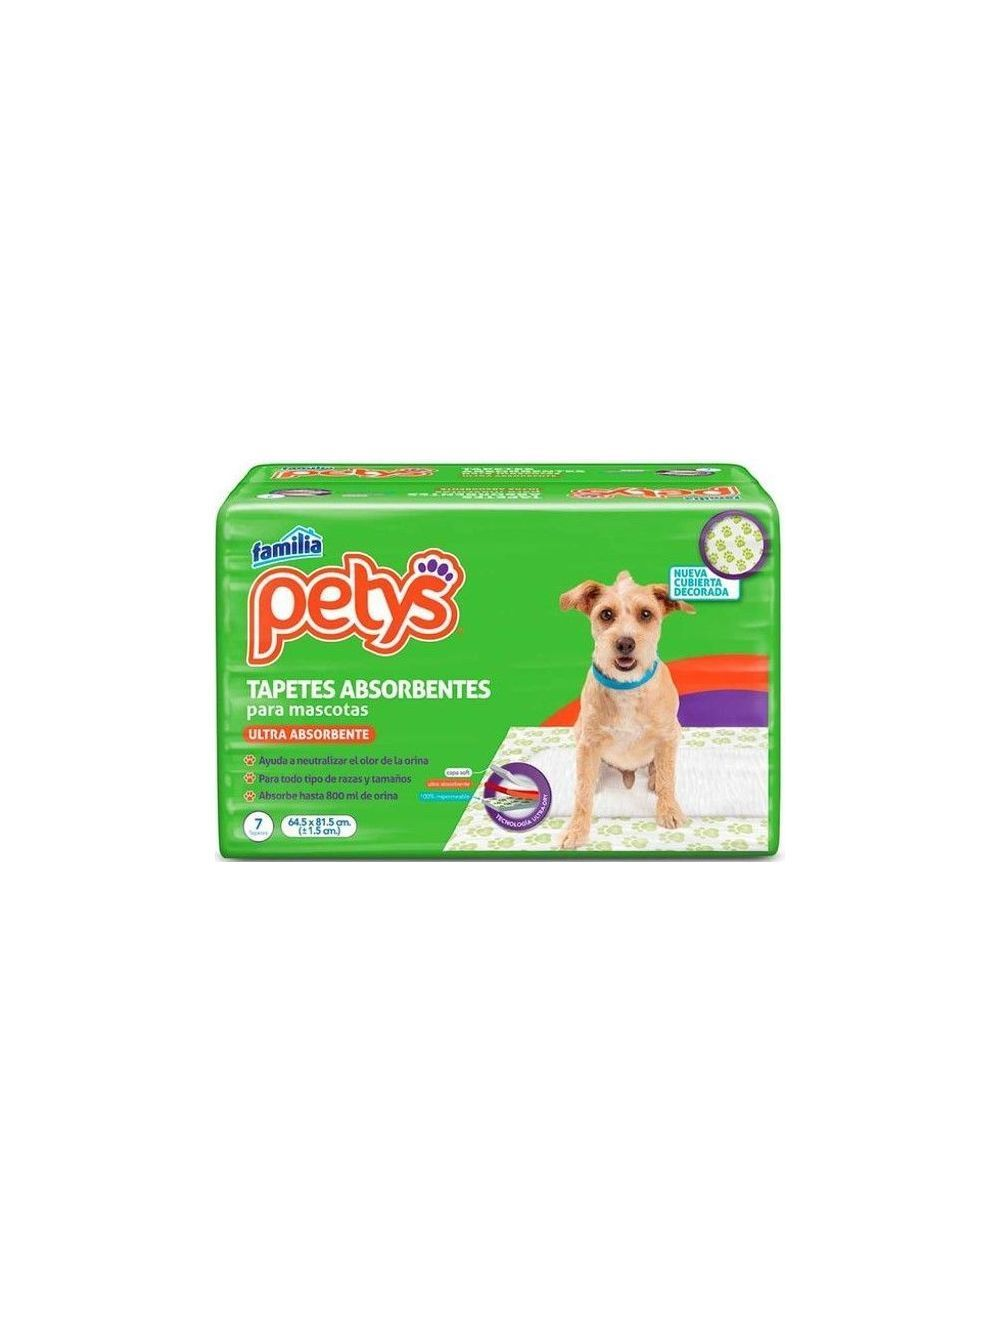 Tapetes Para Perros Petys Absorbentes Paquete x 7 tapetes - P80